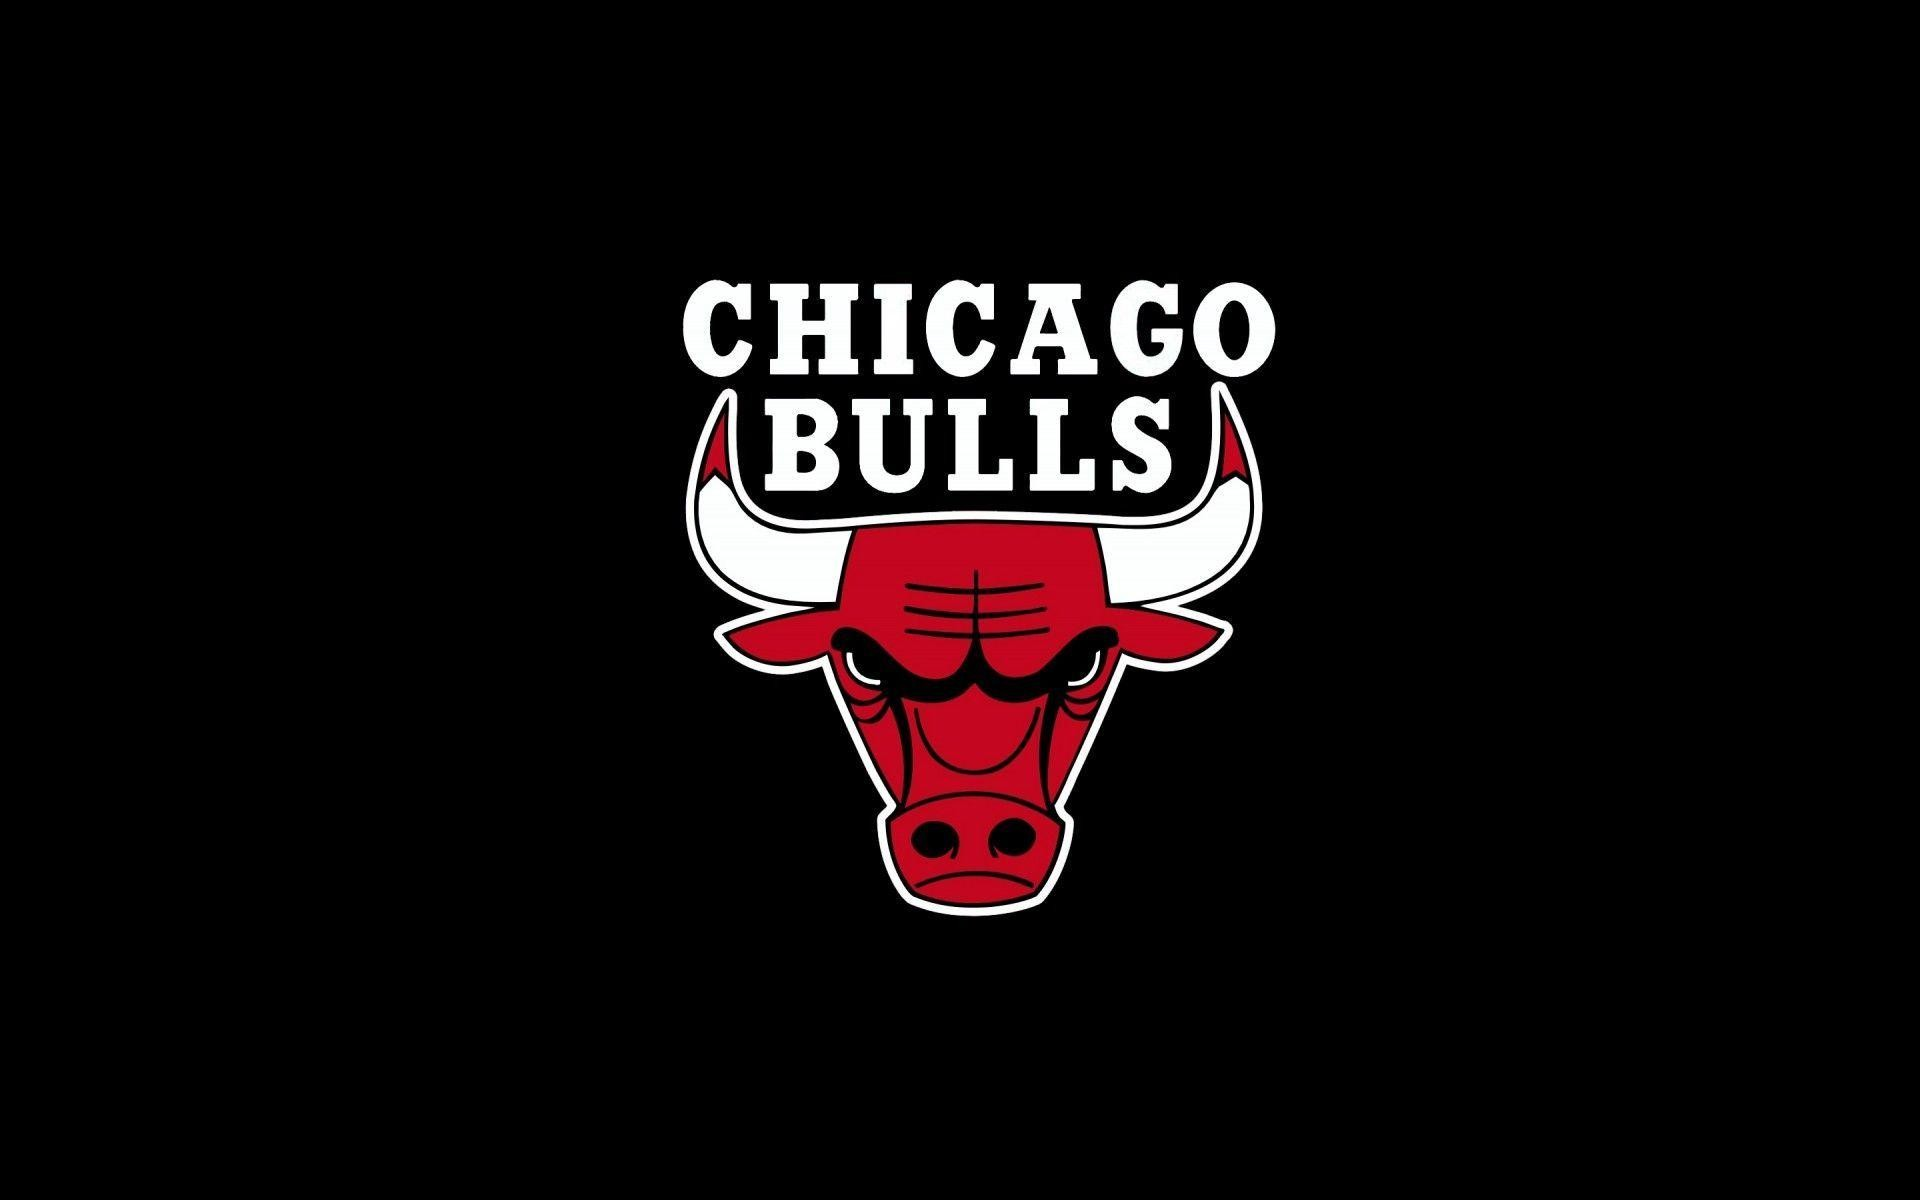 1920x1200 - Chicago Bulls HD 2